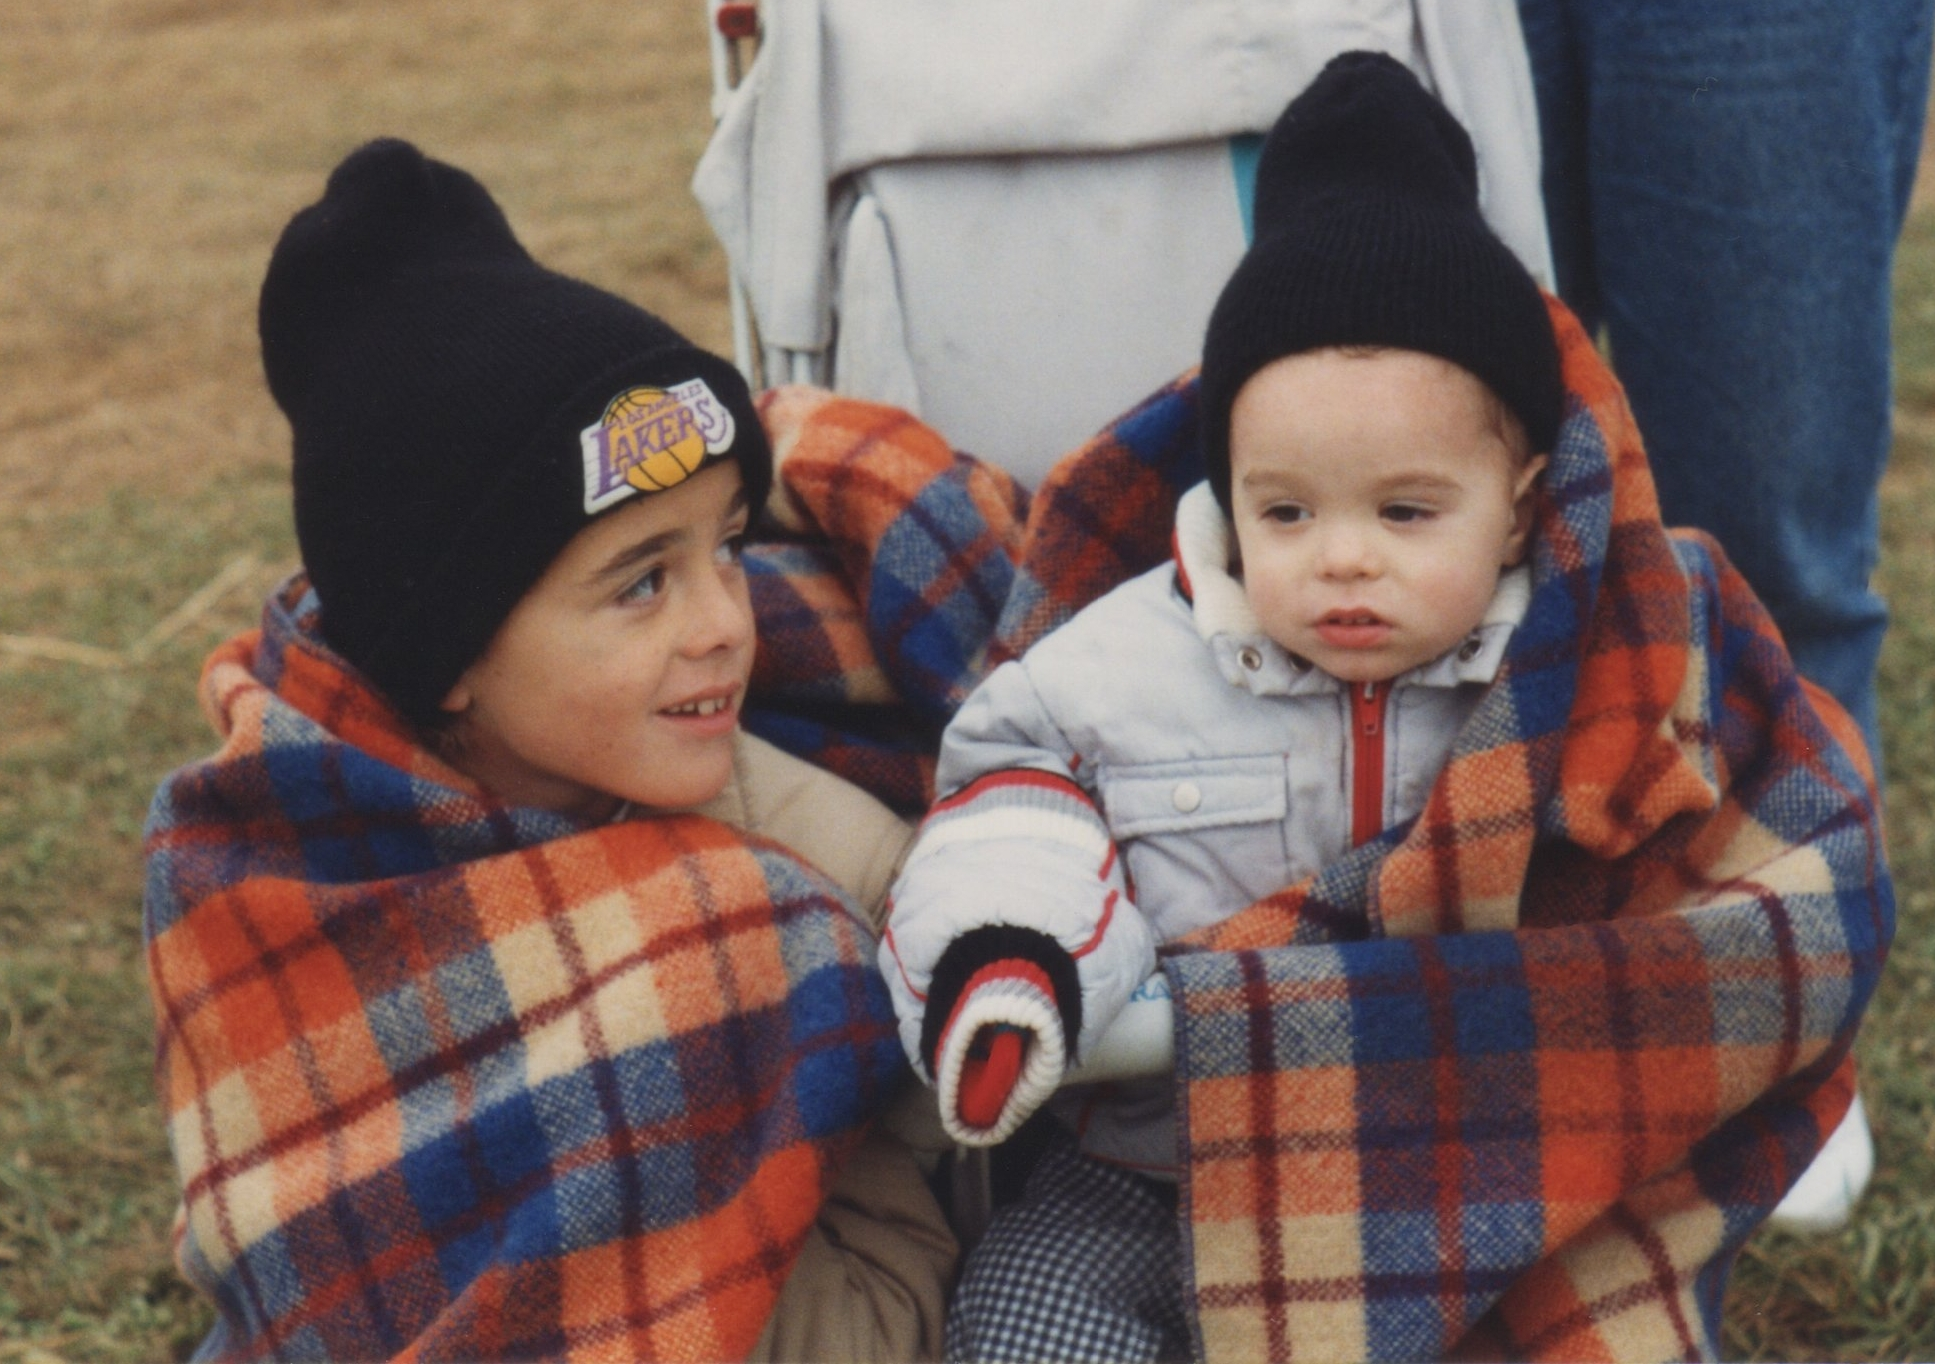 Eric (left) and Chris (right) at a hot air balloon show in the early 90s.